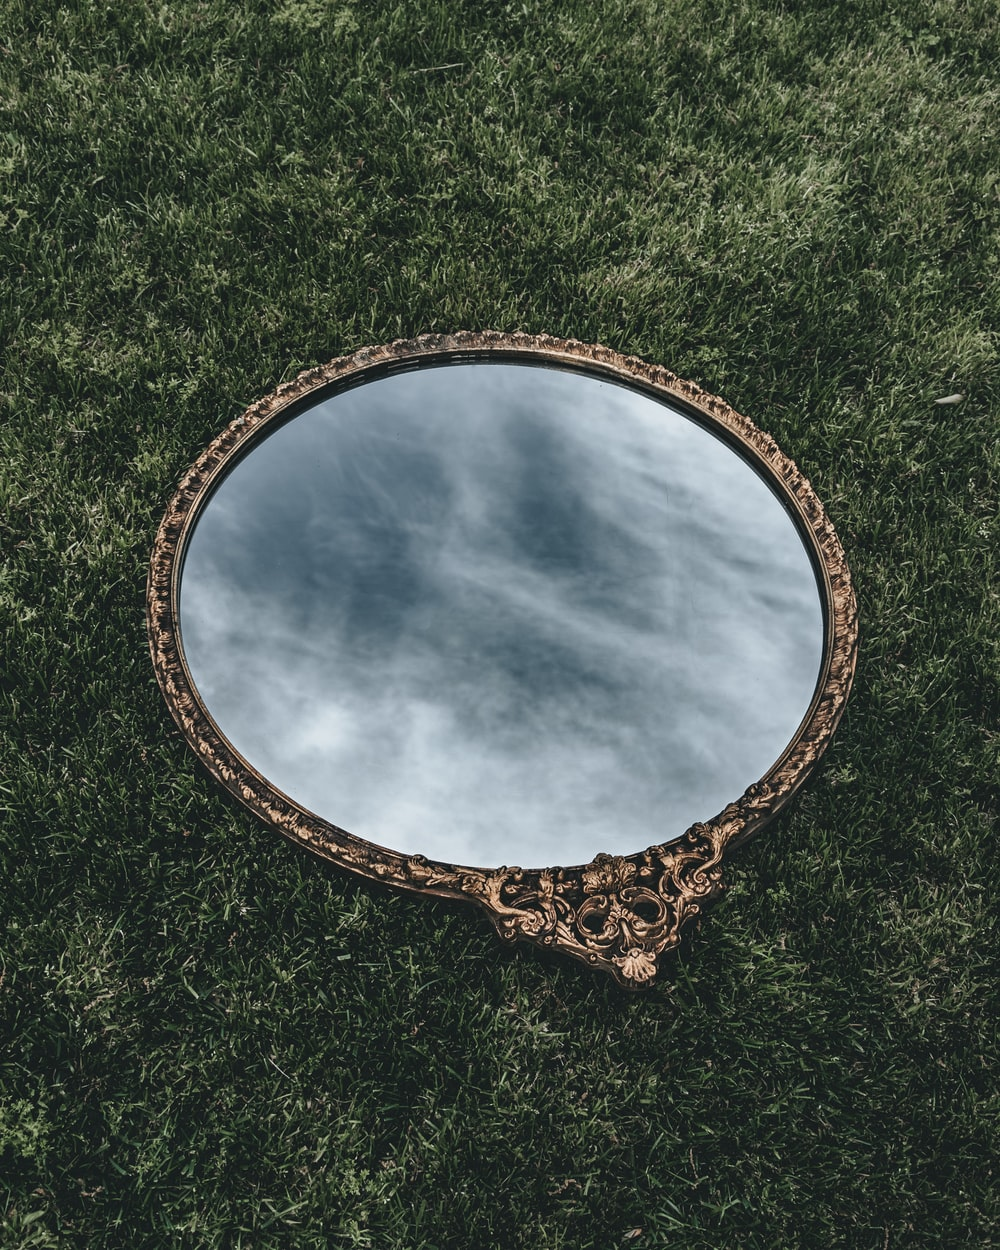 oval mirror with brown wooden frame on green grass